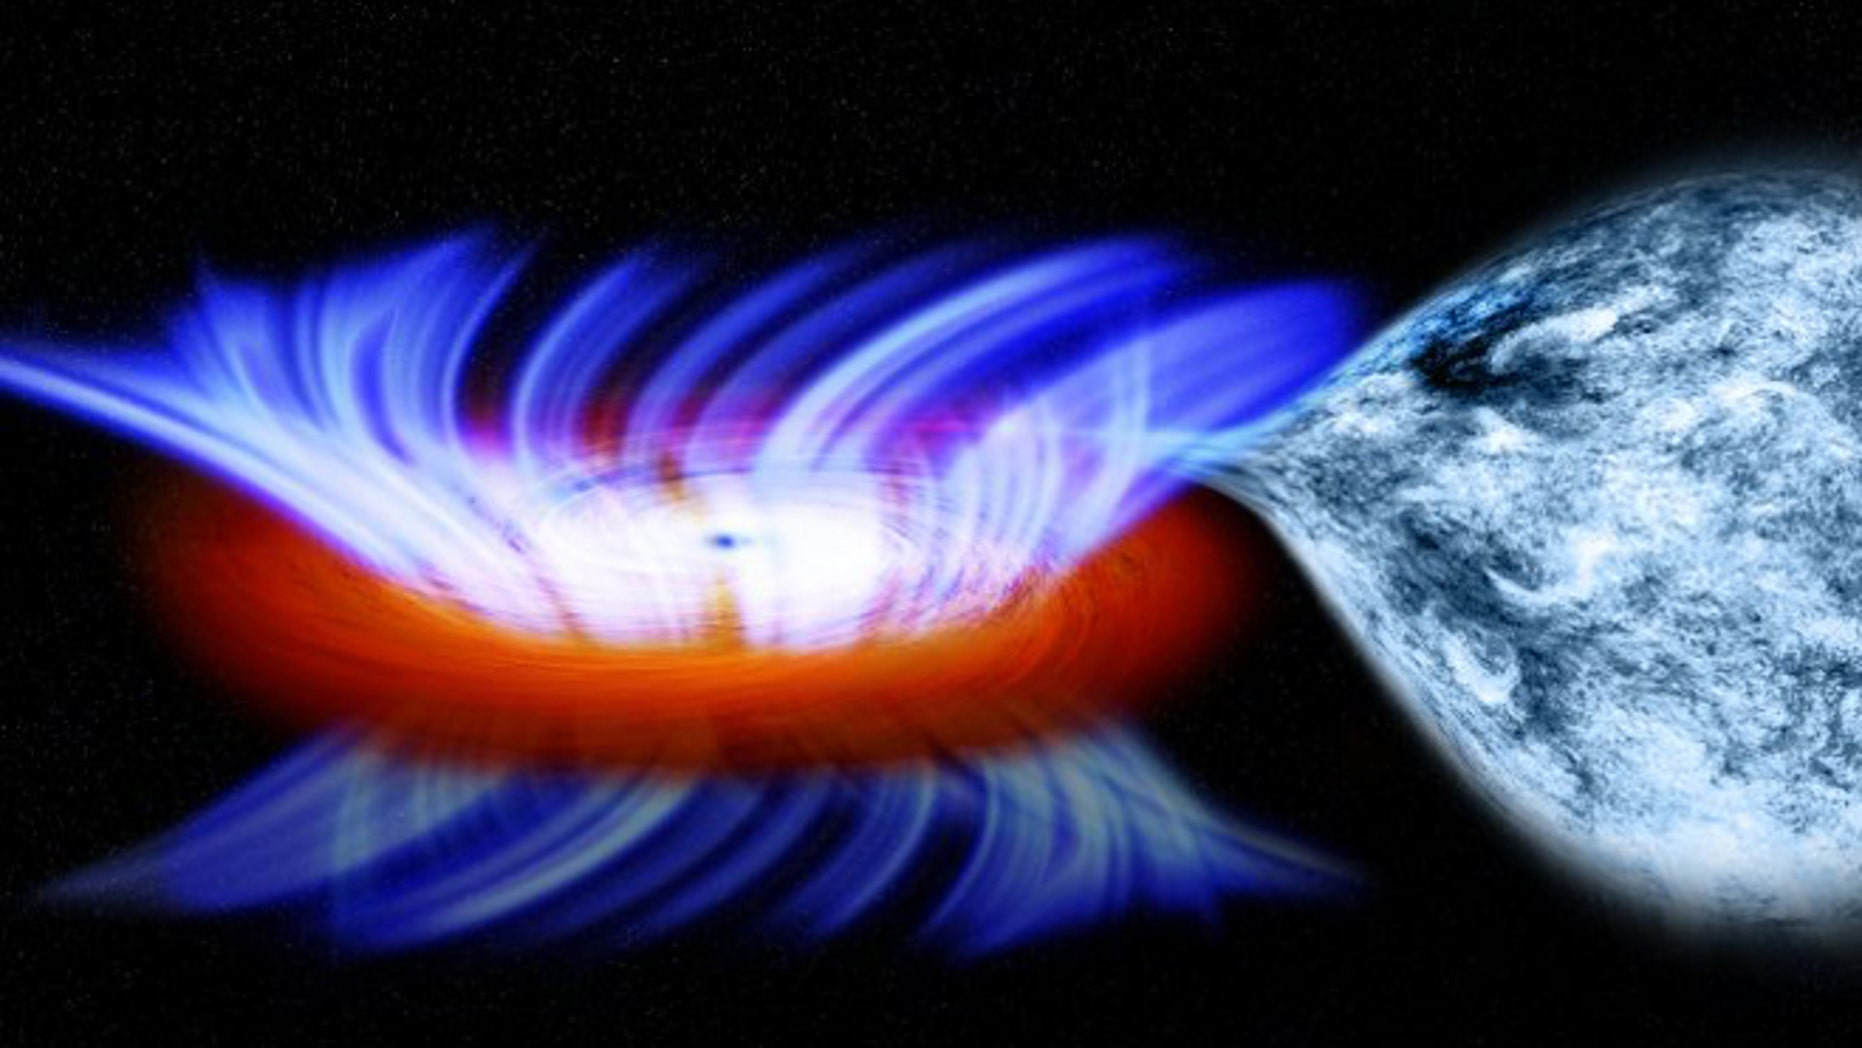 This artist's impression shows a binary system containing a stellar-mass black hole called IGR J17091-3624. The strong gravity of the black hole, on the left, is pulling gas away from a companion star on the right. This gas forms a disk of hot gas around the black hole, and the wind is driven off this disk at 20 million mph.